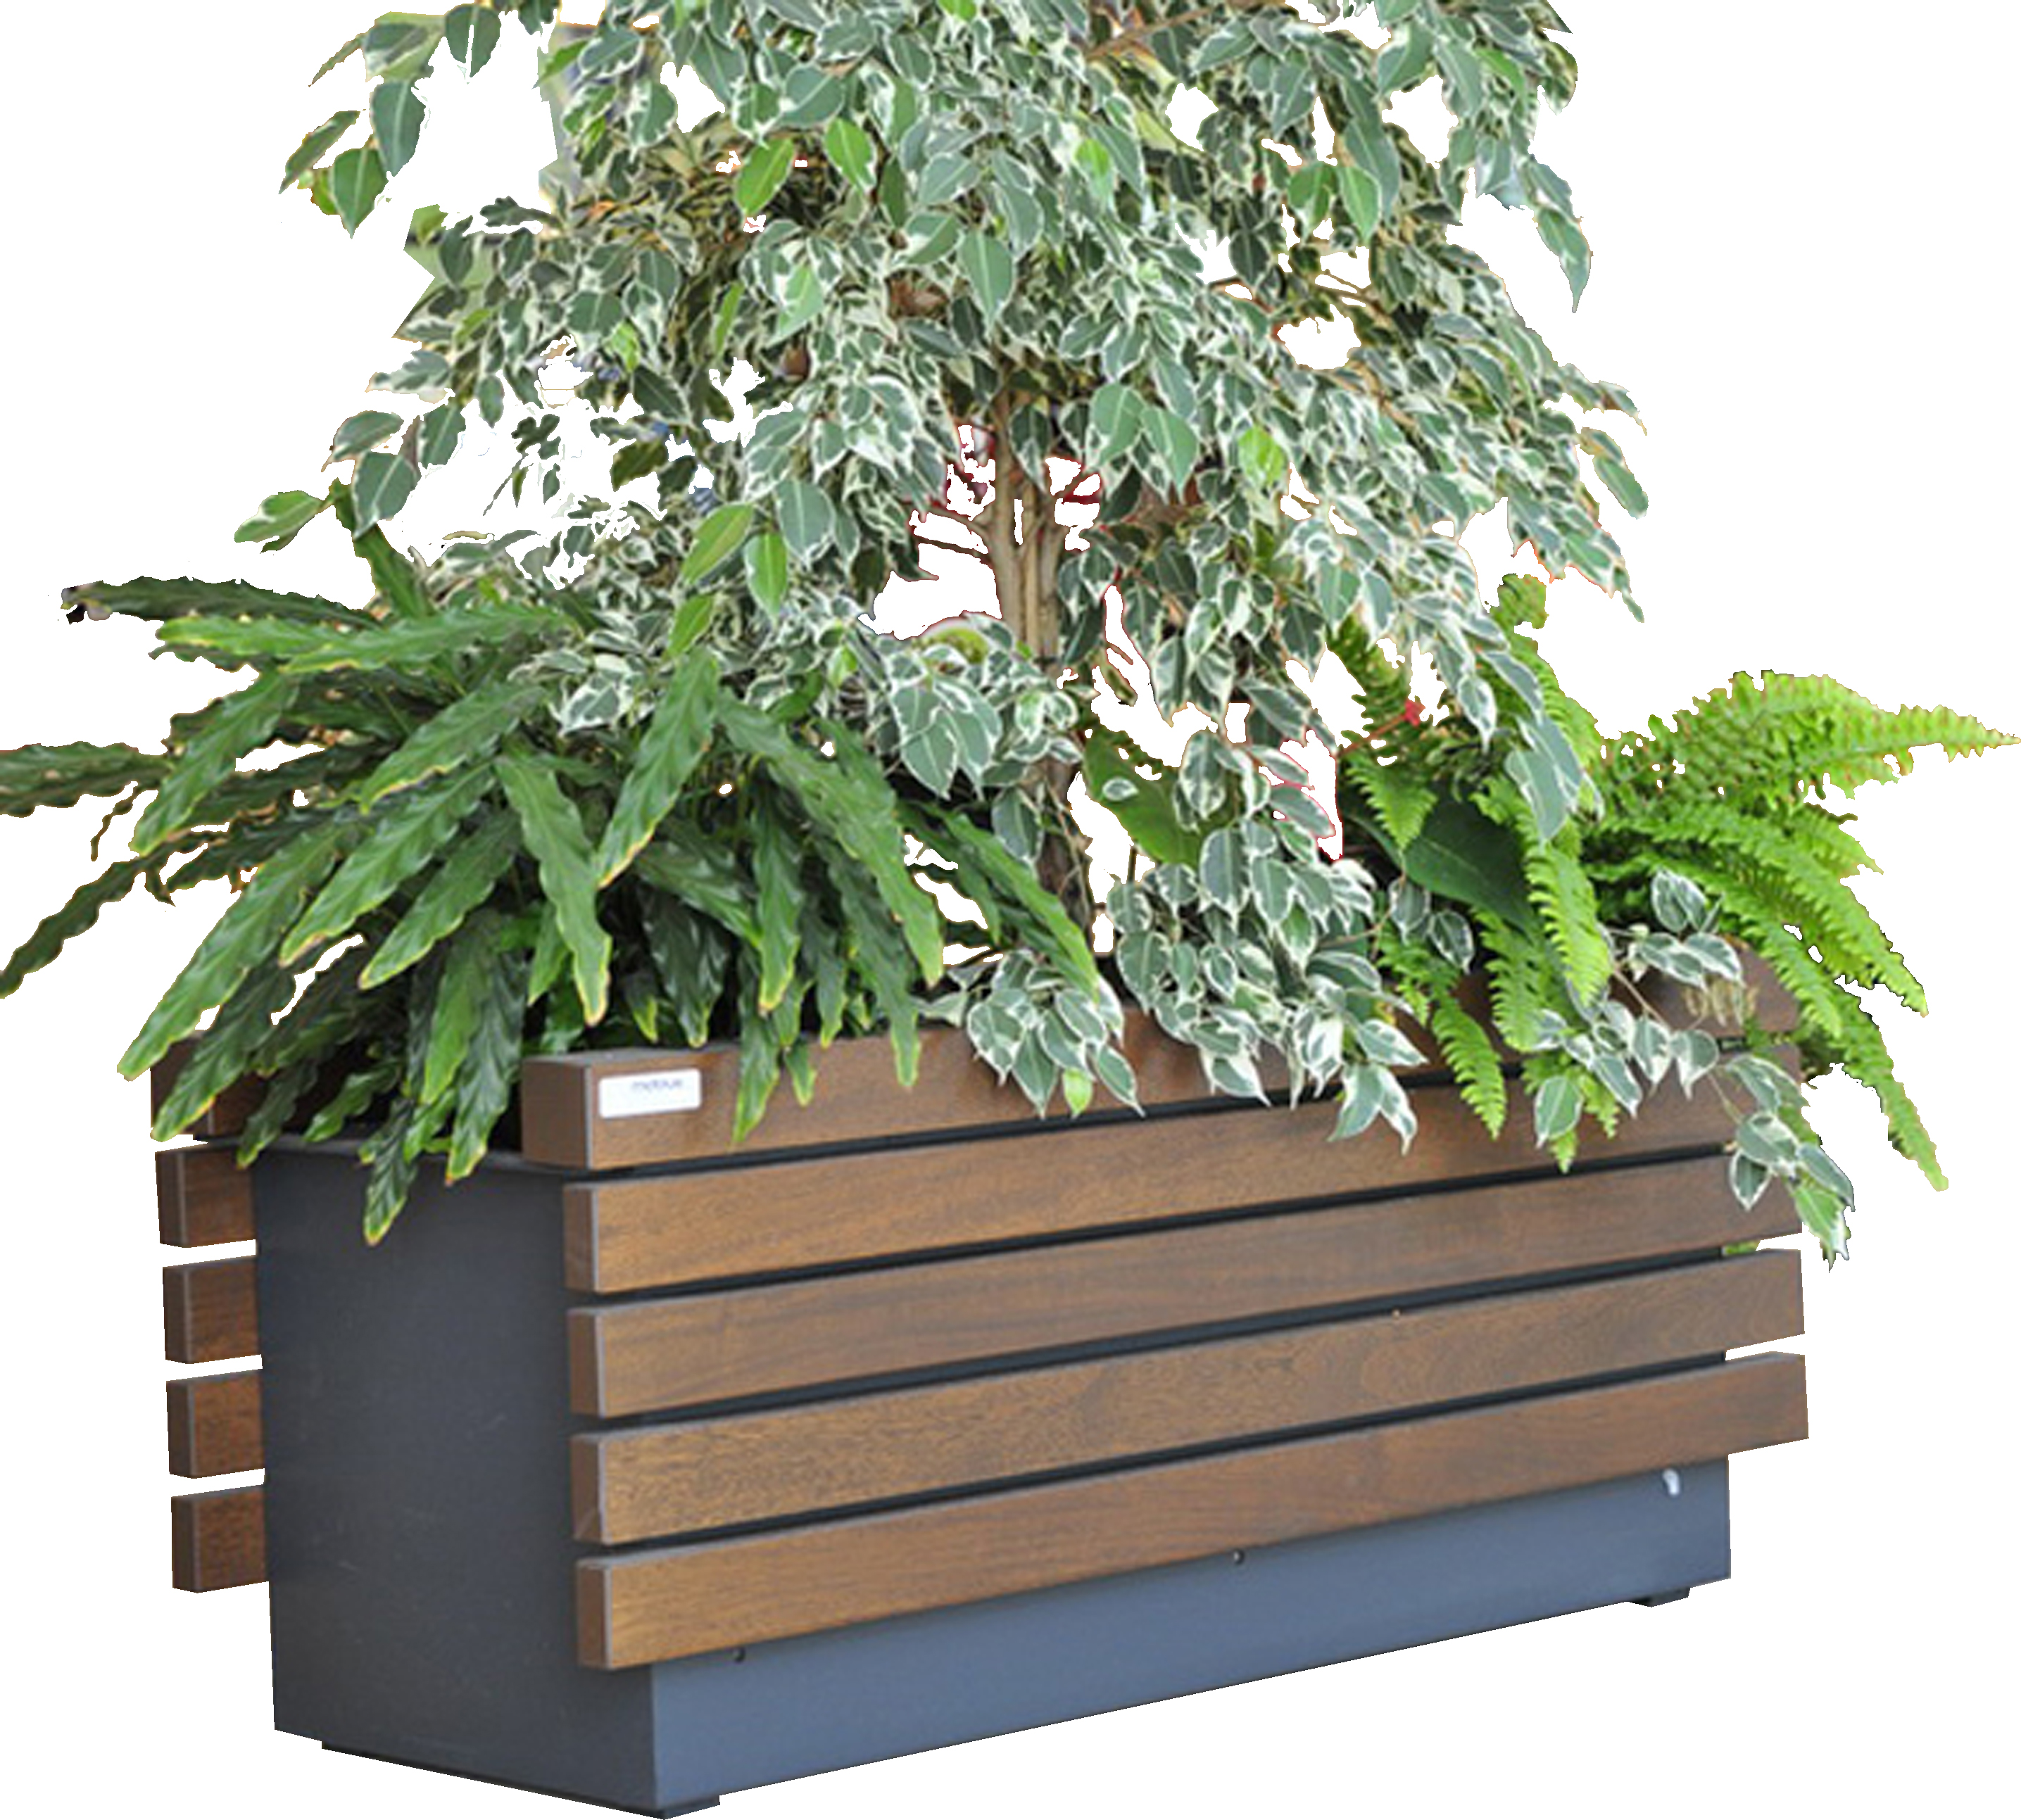 Fabricant Mobilier Urbain Fiore 175 Planter Guyon Outdoor And Street Furnituremobilier